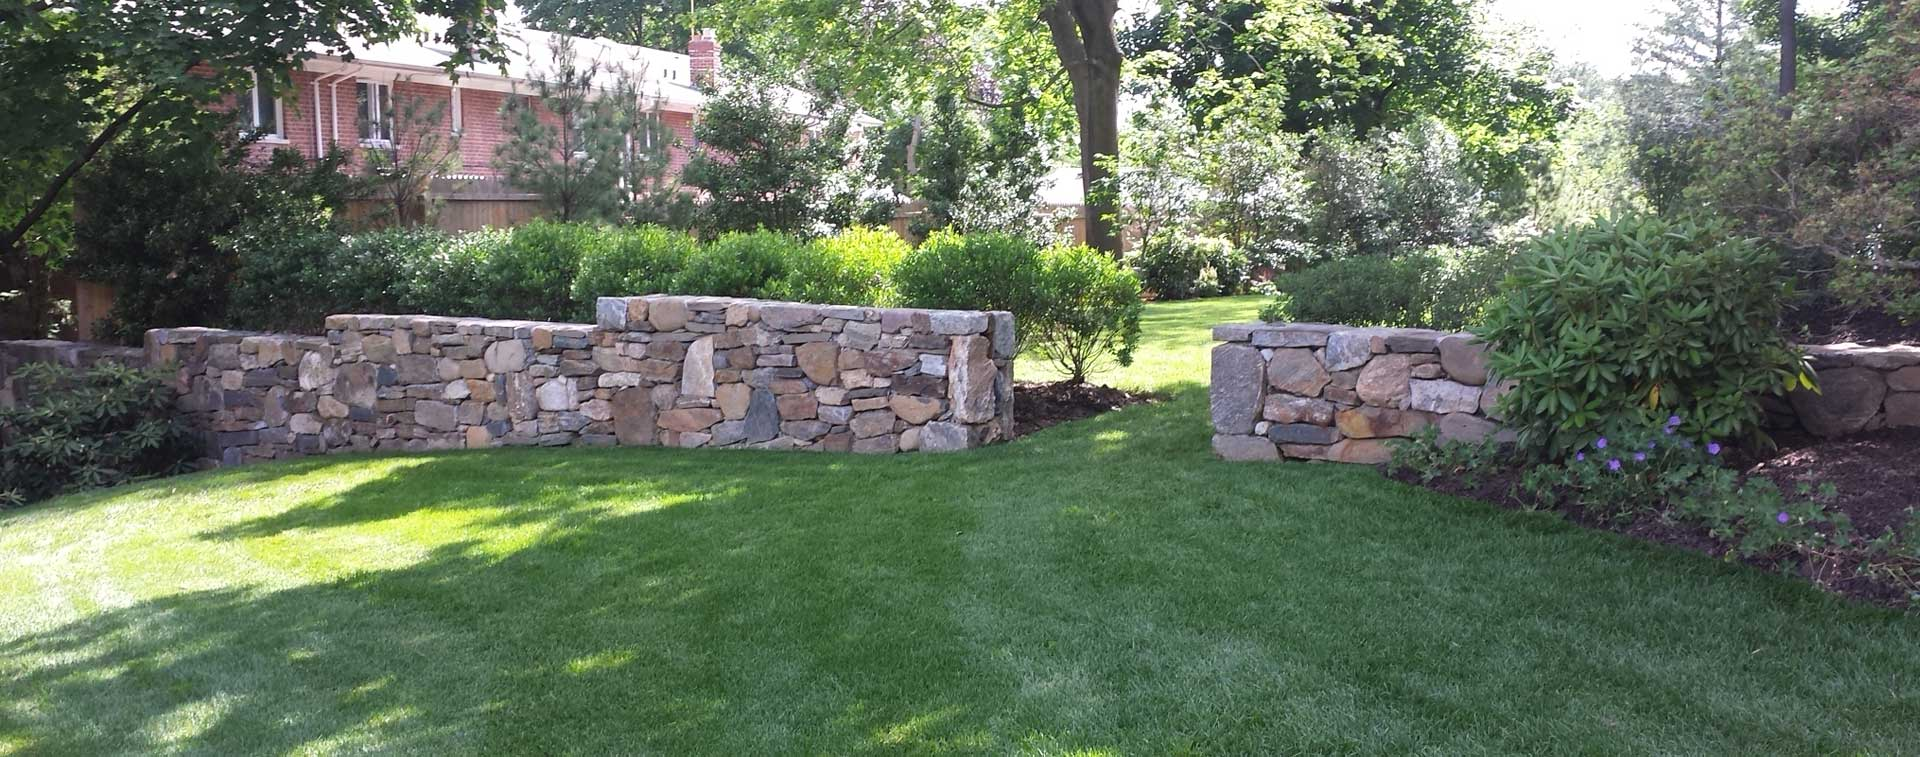 Retaining walls of stone or lumber in Westchester New York